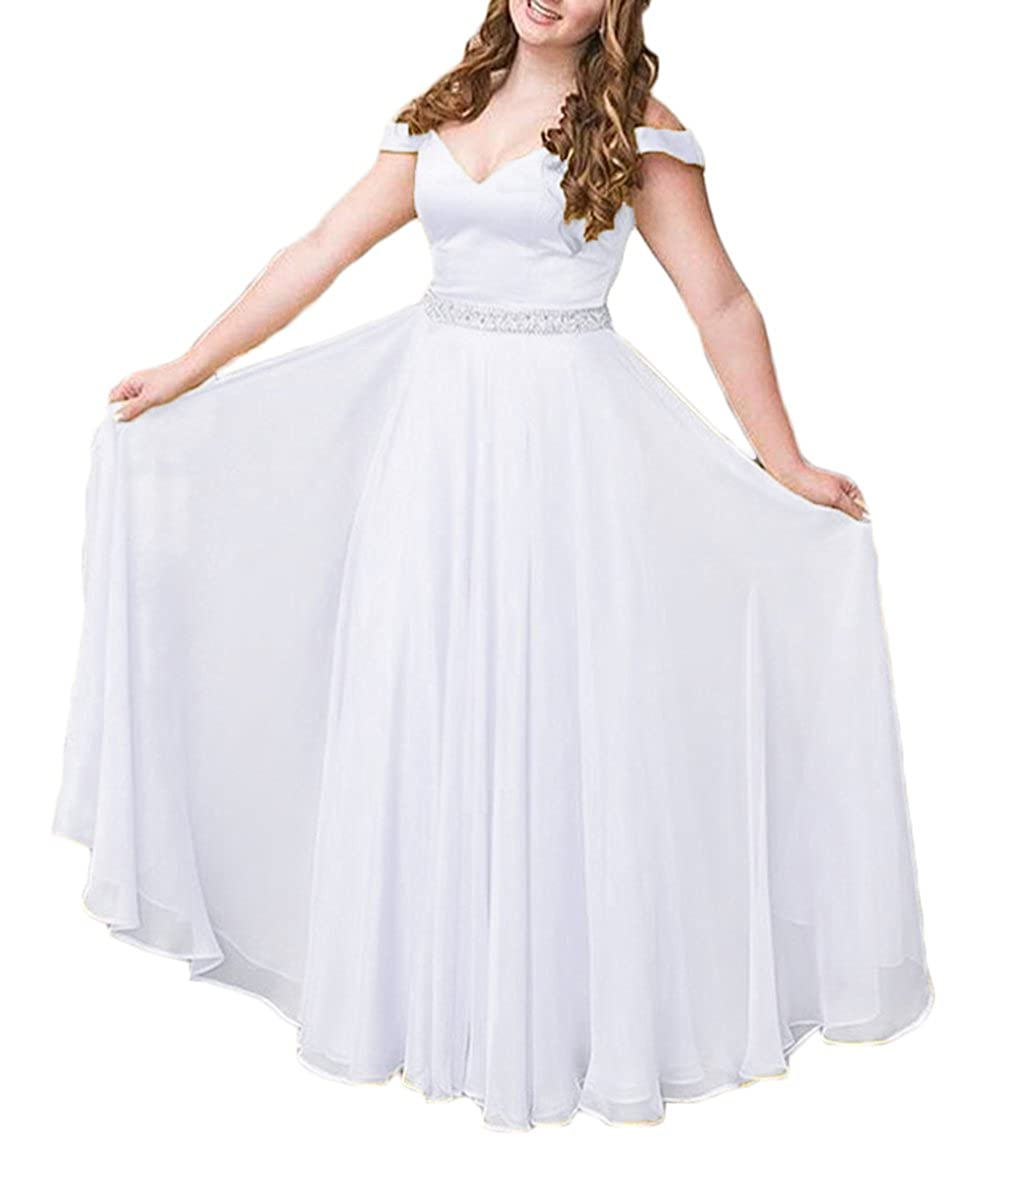 White alilith.Z Sexy Off The Shoulder A Line Princess Prom Dresses Beaded Long Formal Evening Dresses Party Gowns for Women